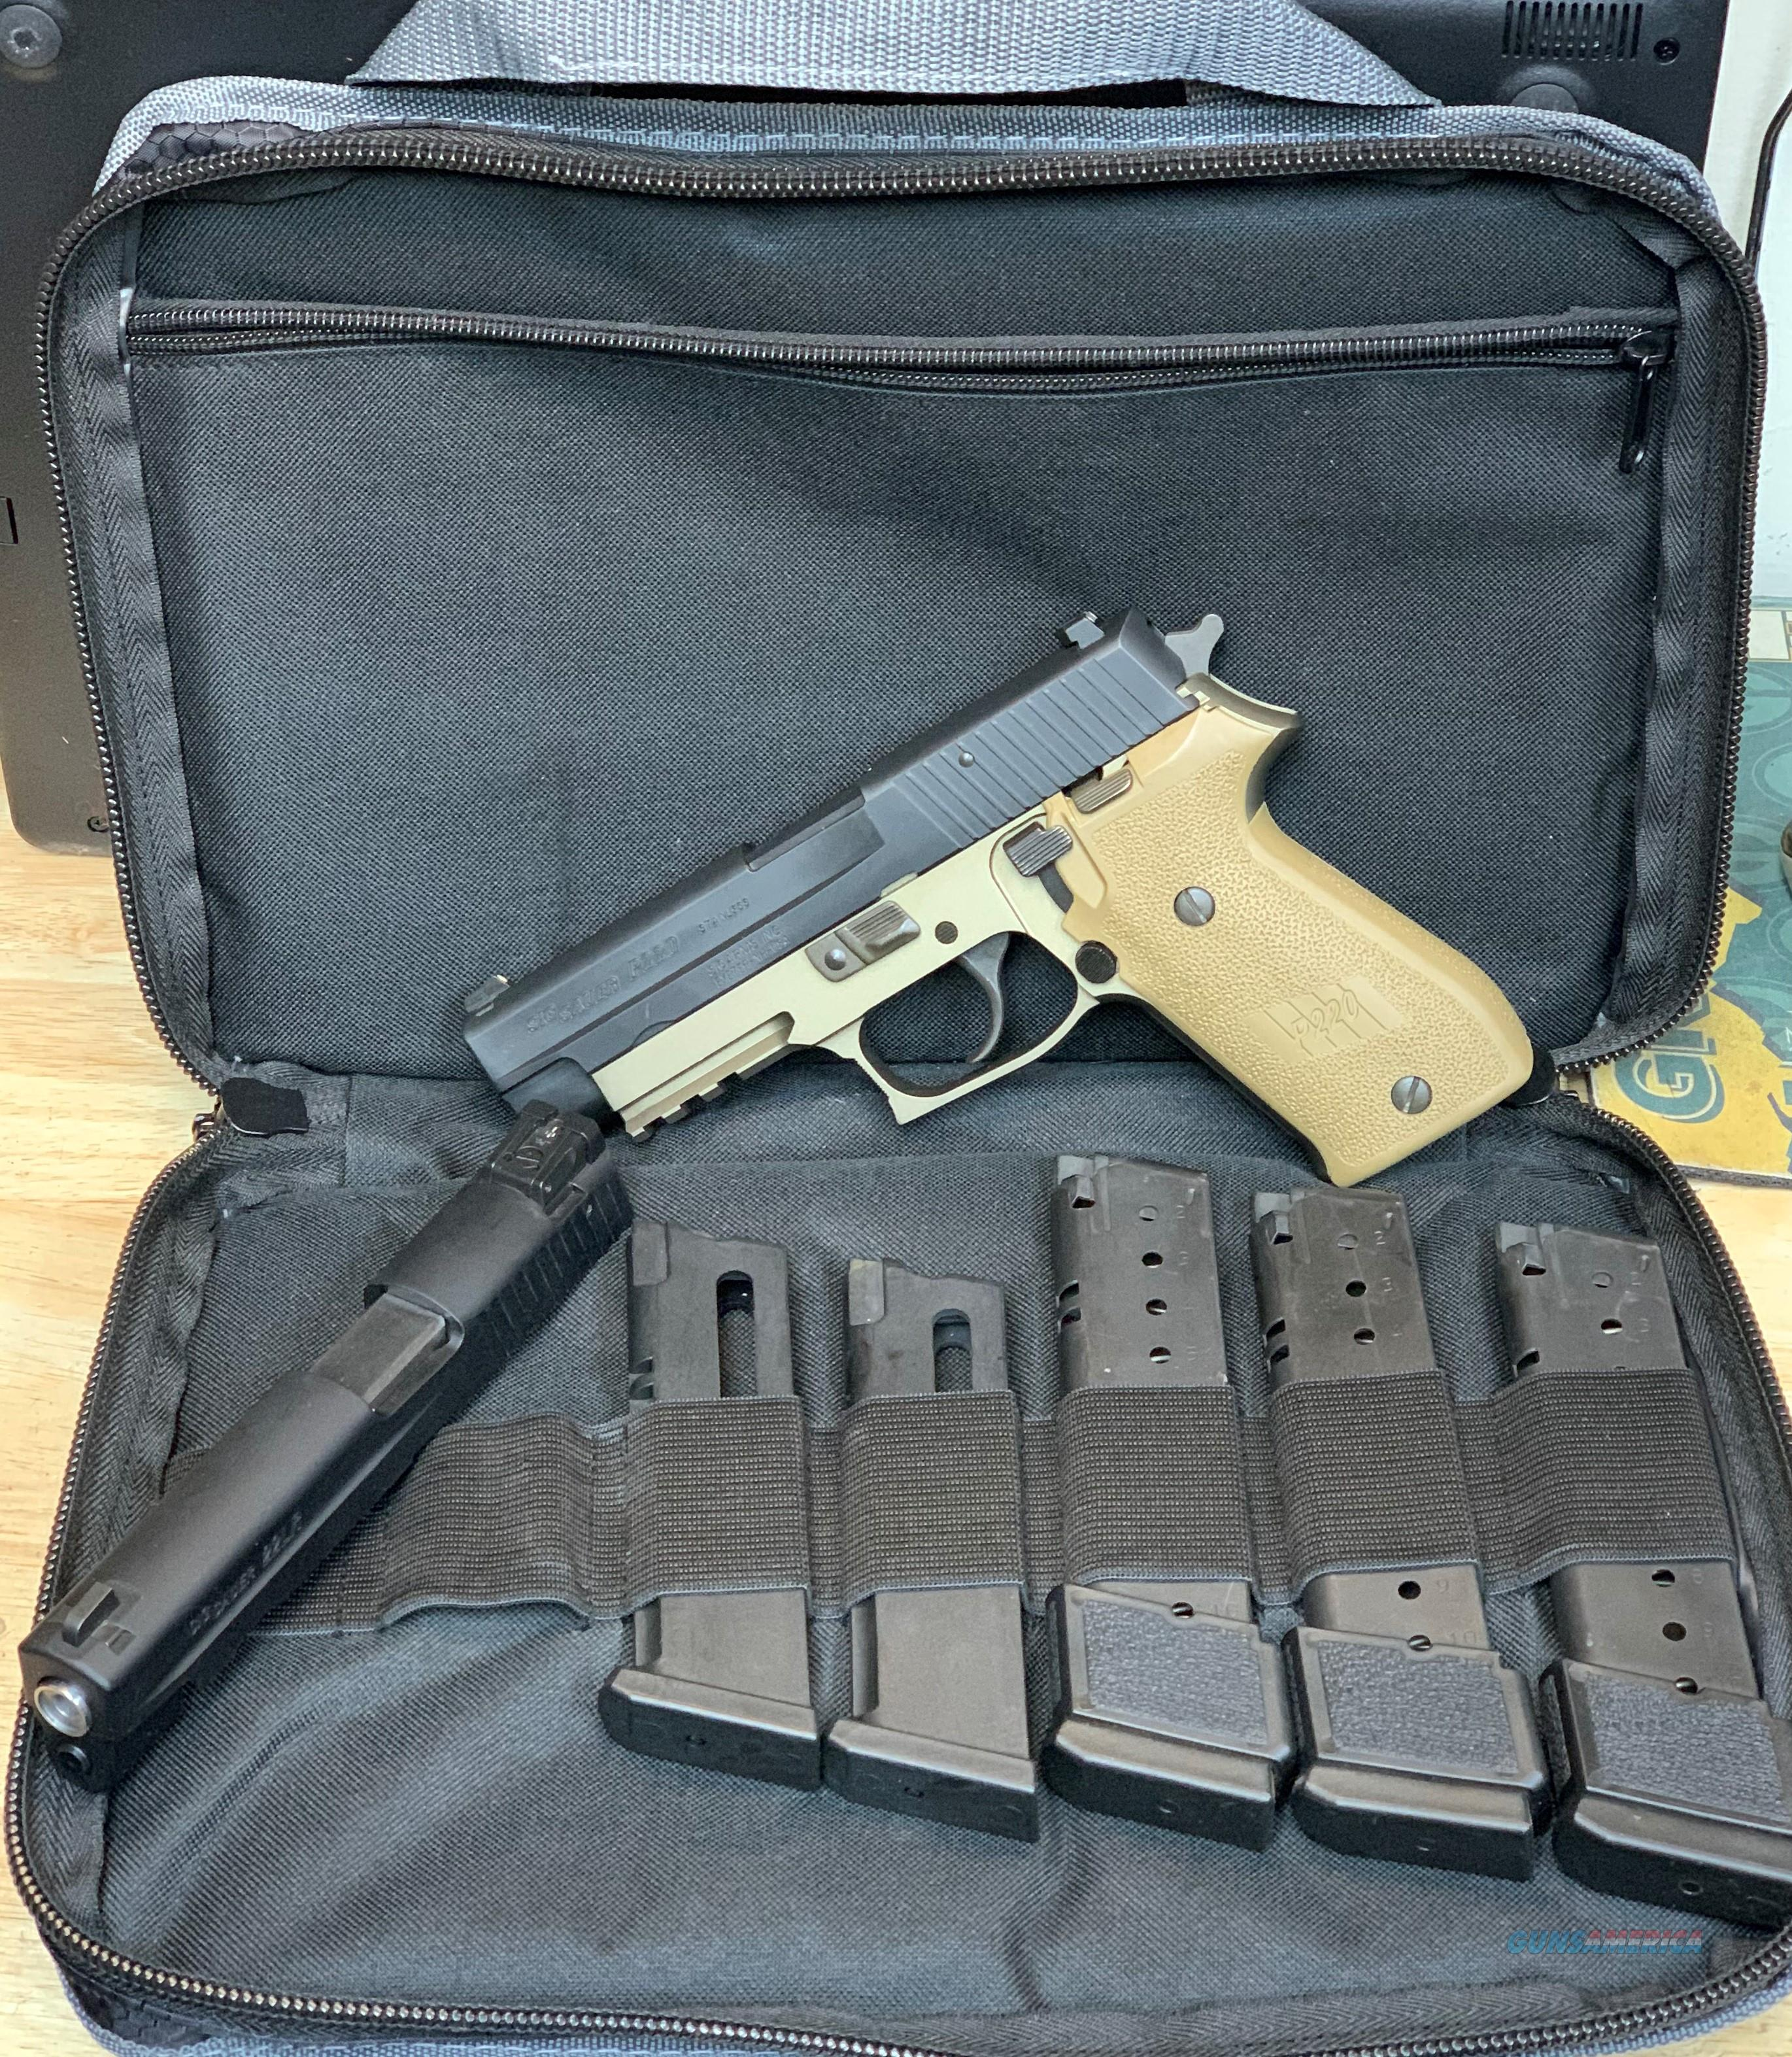 Sig P220 Combat with 22 Conversion  Guns > Pistols > Sig - Sauer/Sigarms Pistols > P220